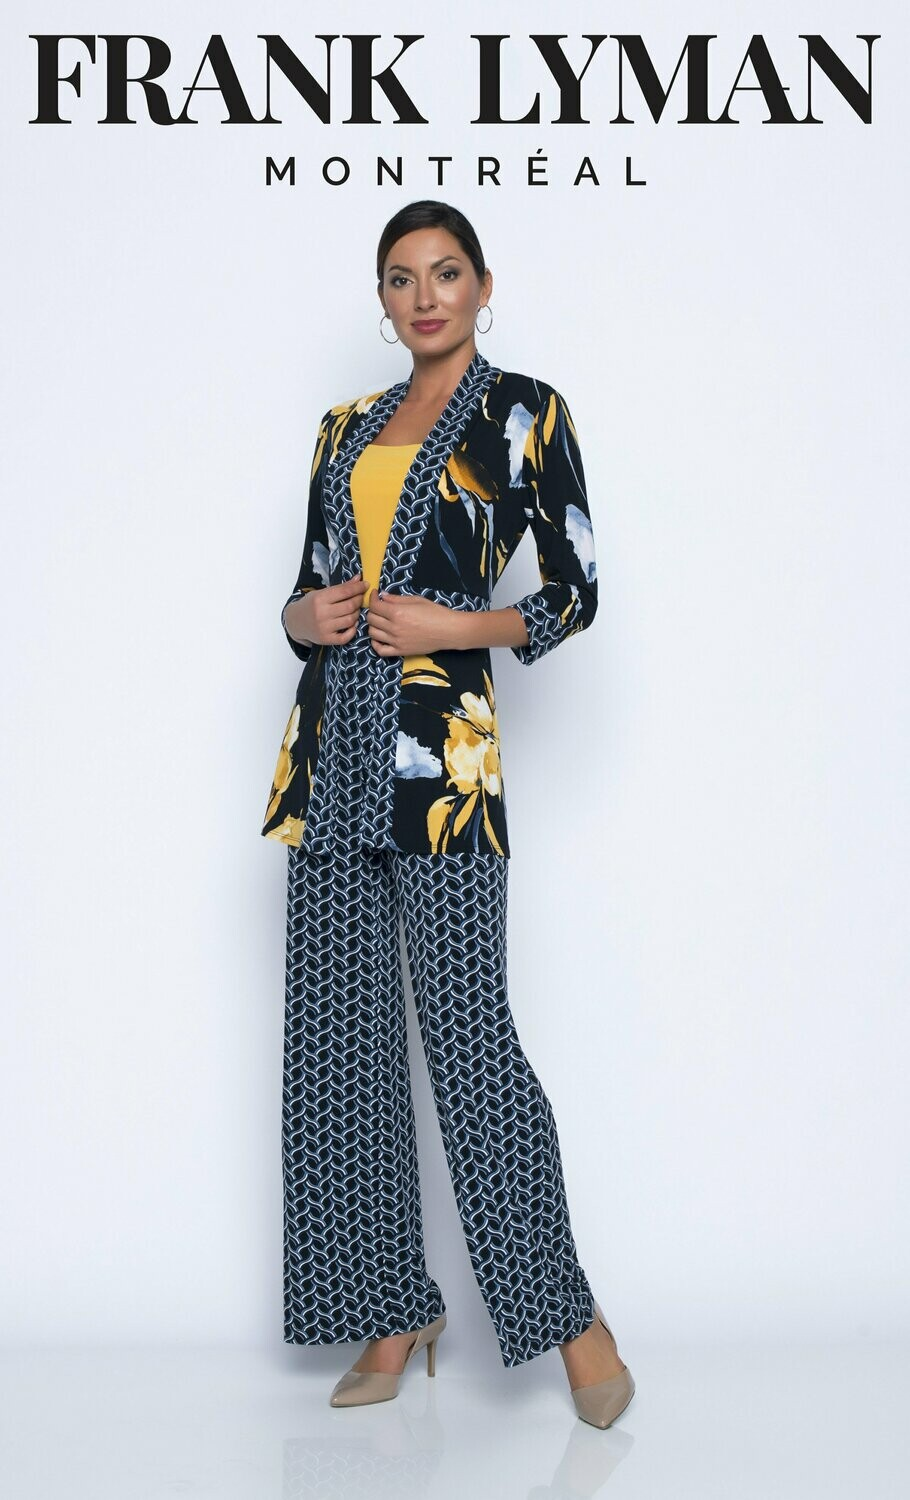 Frank Lyman Chain Motif Jersey Pant In Black and Blue